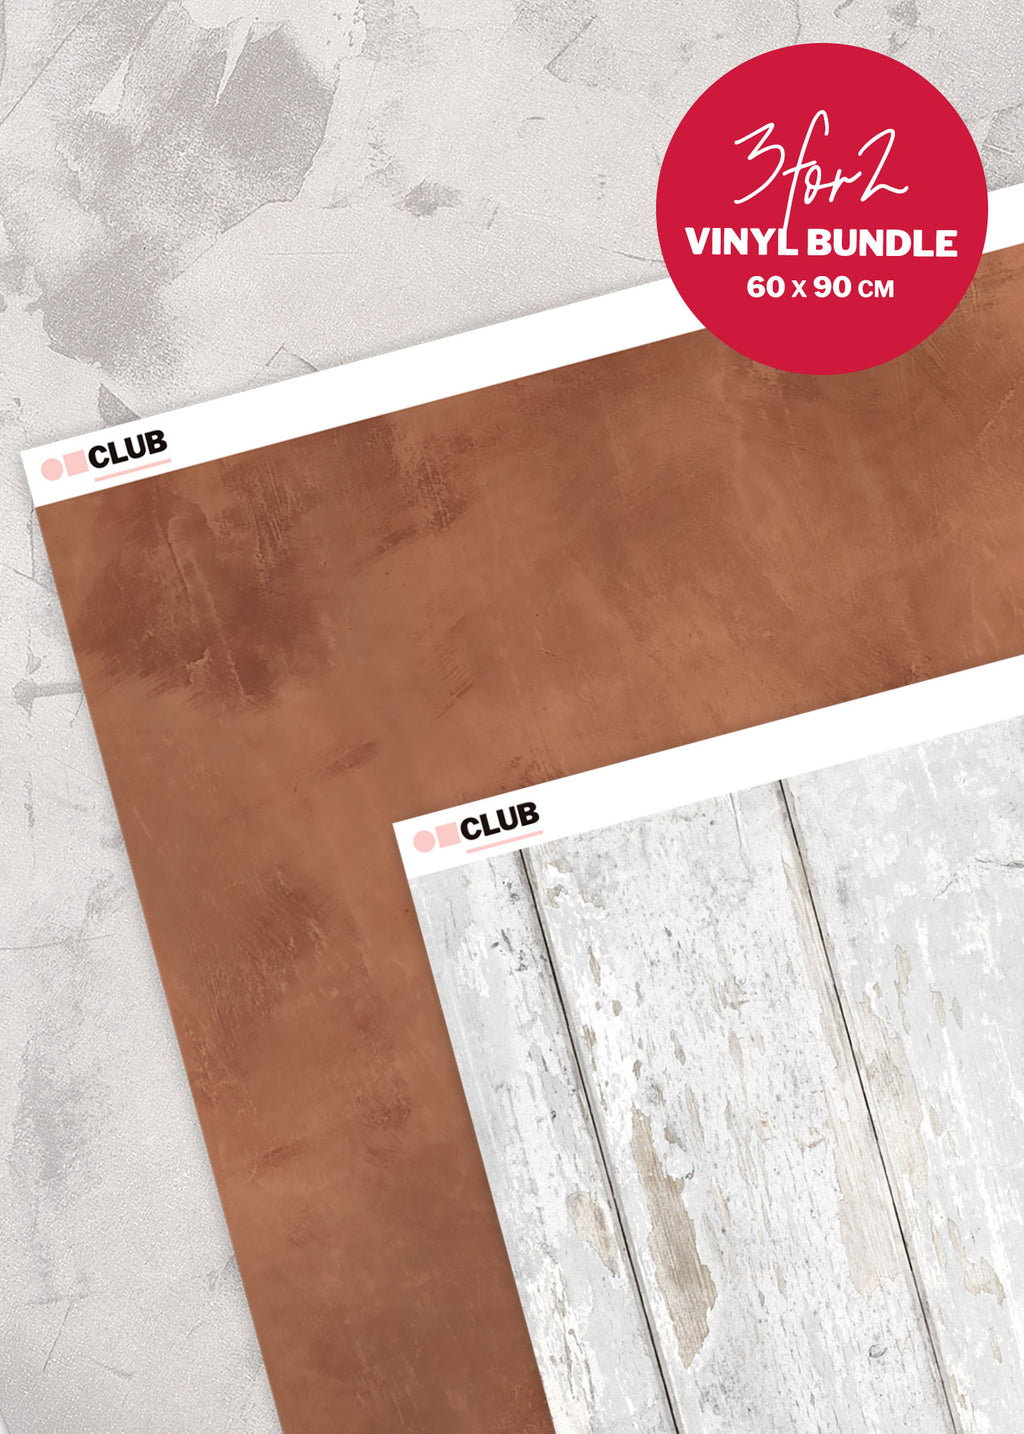 Vinyl Photography Backdrop Bundle by Club Backdrops